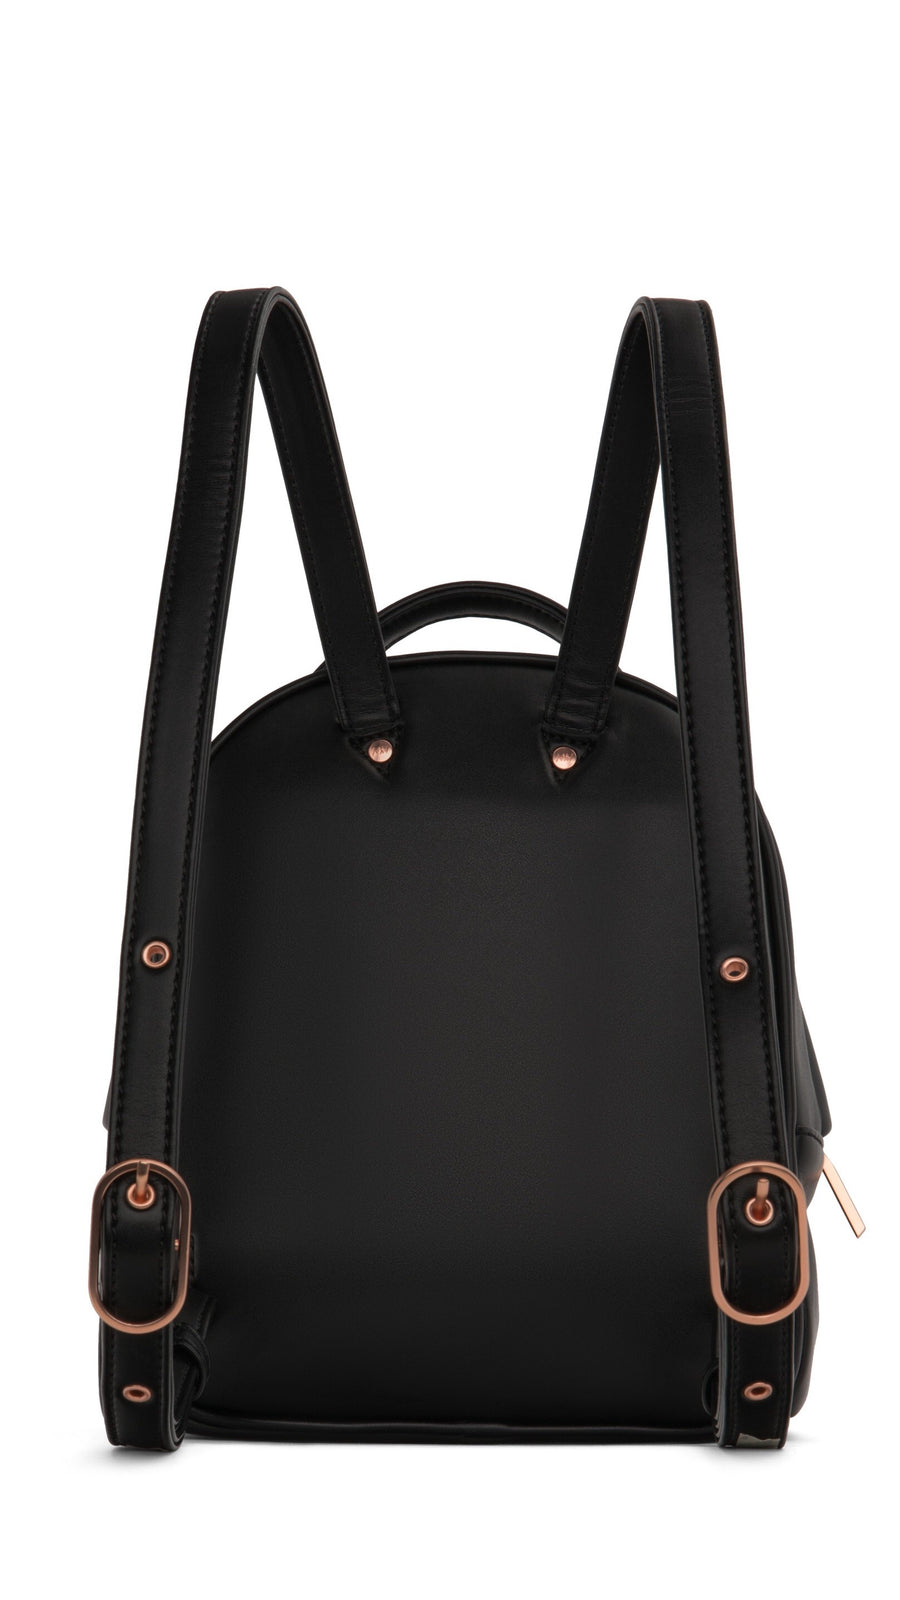 Black & Rose Gold BALI MINI Backpack by Matt & Nat